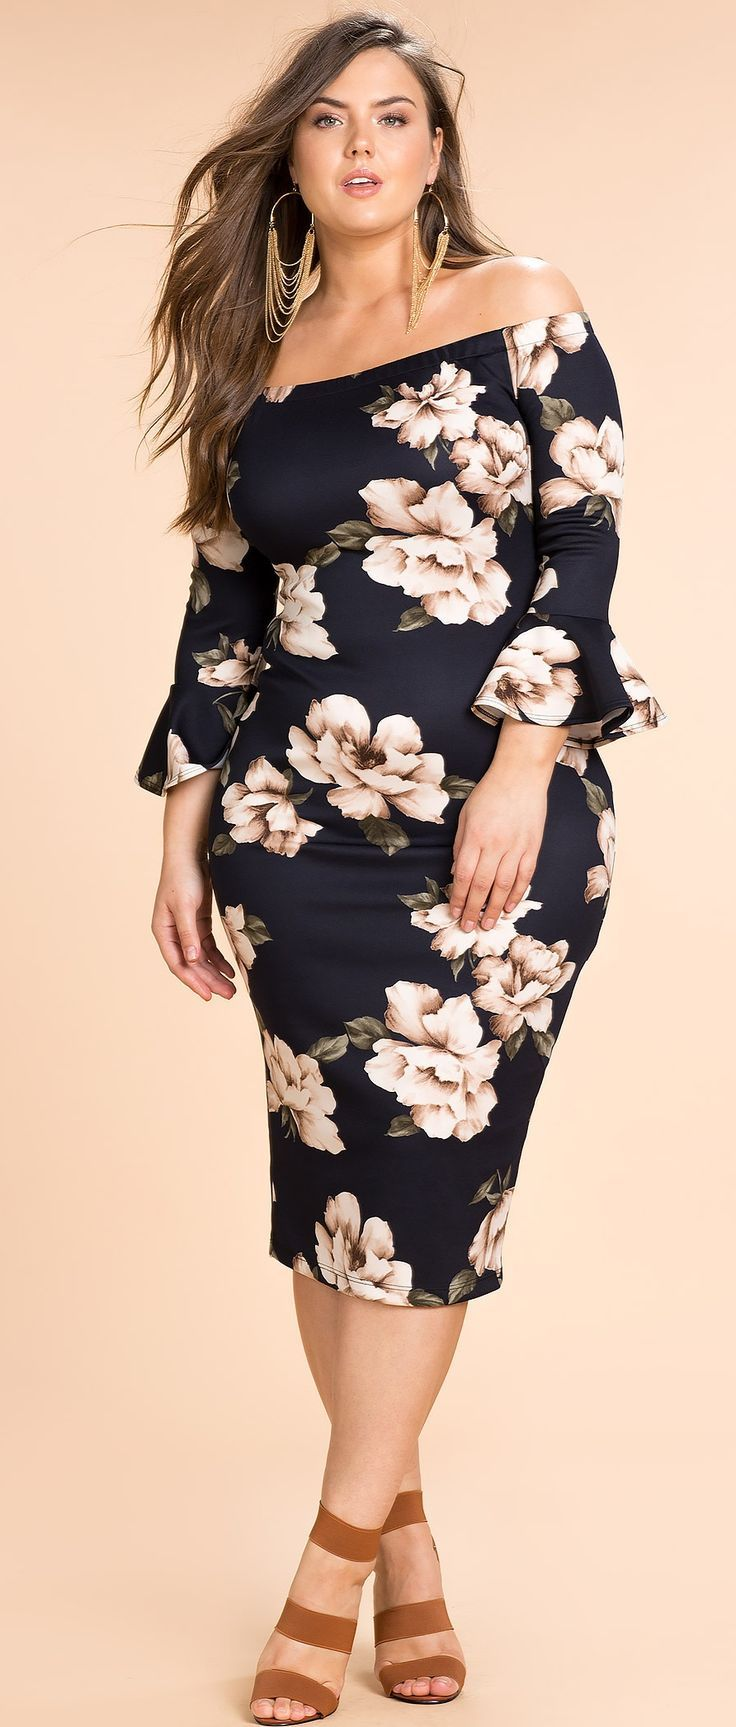 Plus size fashion 14 29